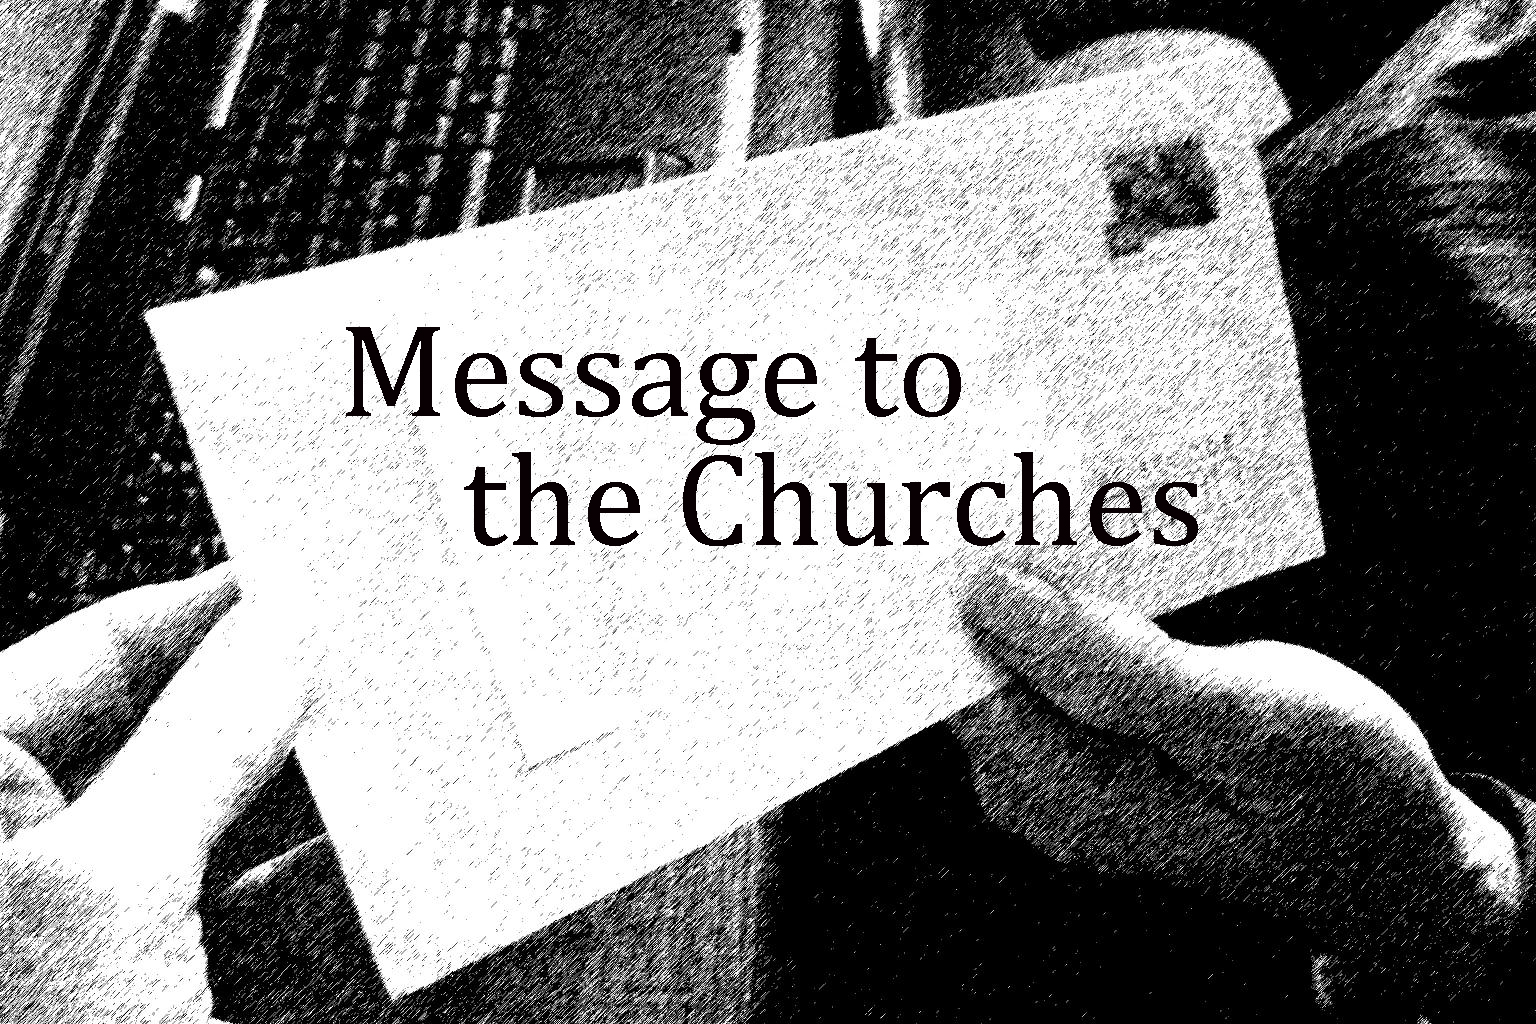 A MUST READ! MESSAGE TO THE CHURCHES